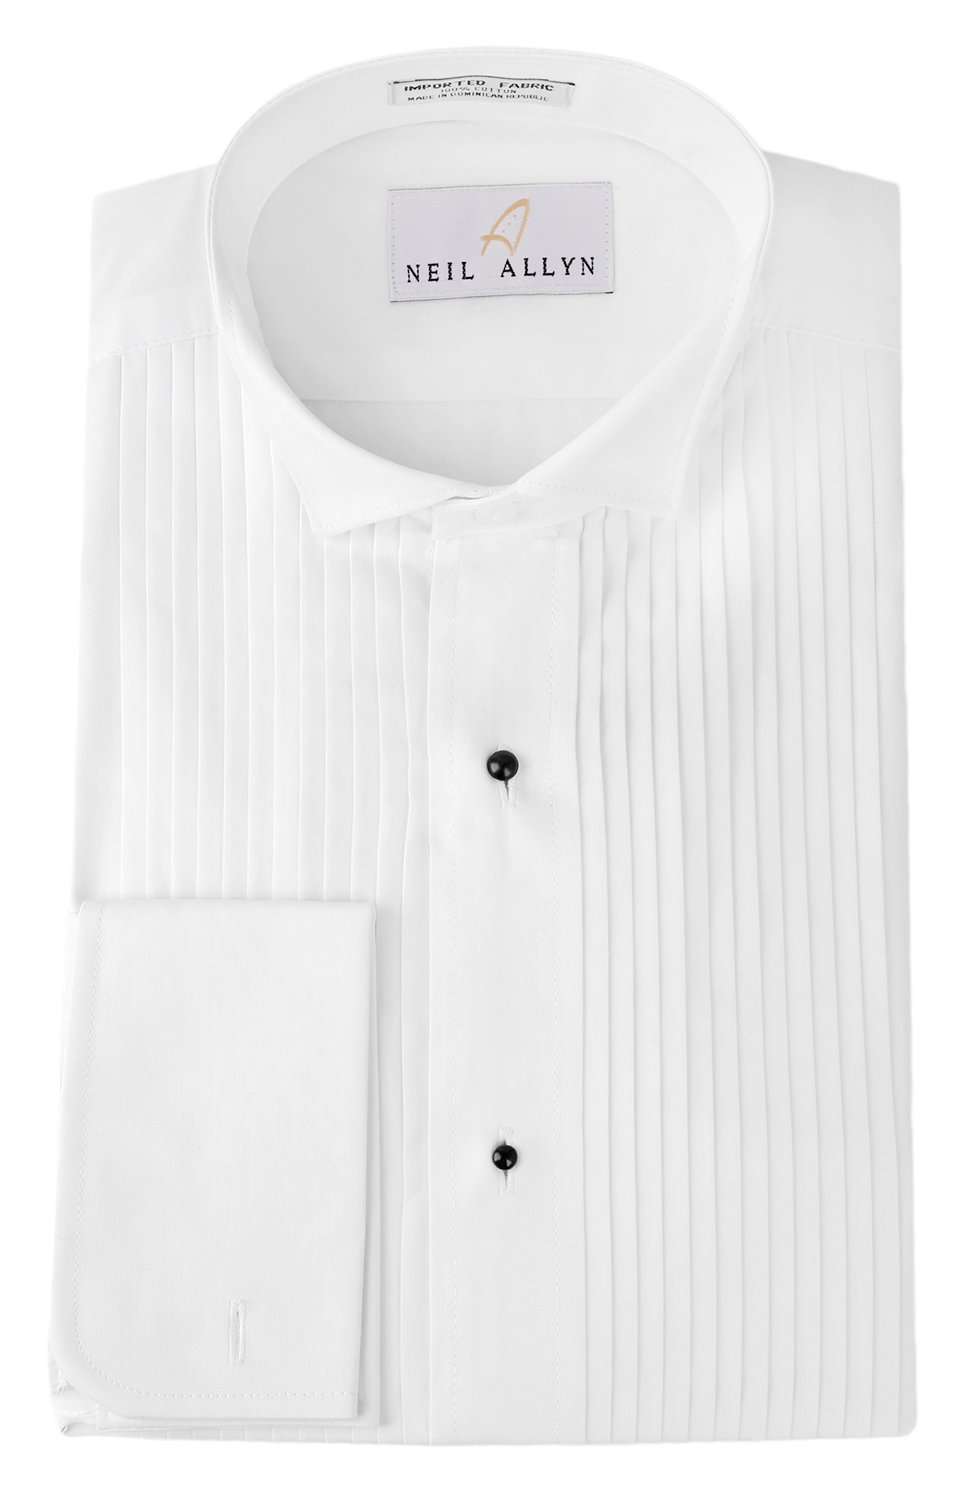 Tuxedo Shirt By Neil Allyn - 100% Cotton Wing Collar with French Cuffs (17 - 32/33) by Neil Allyn